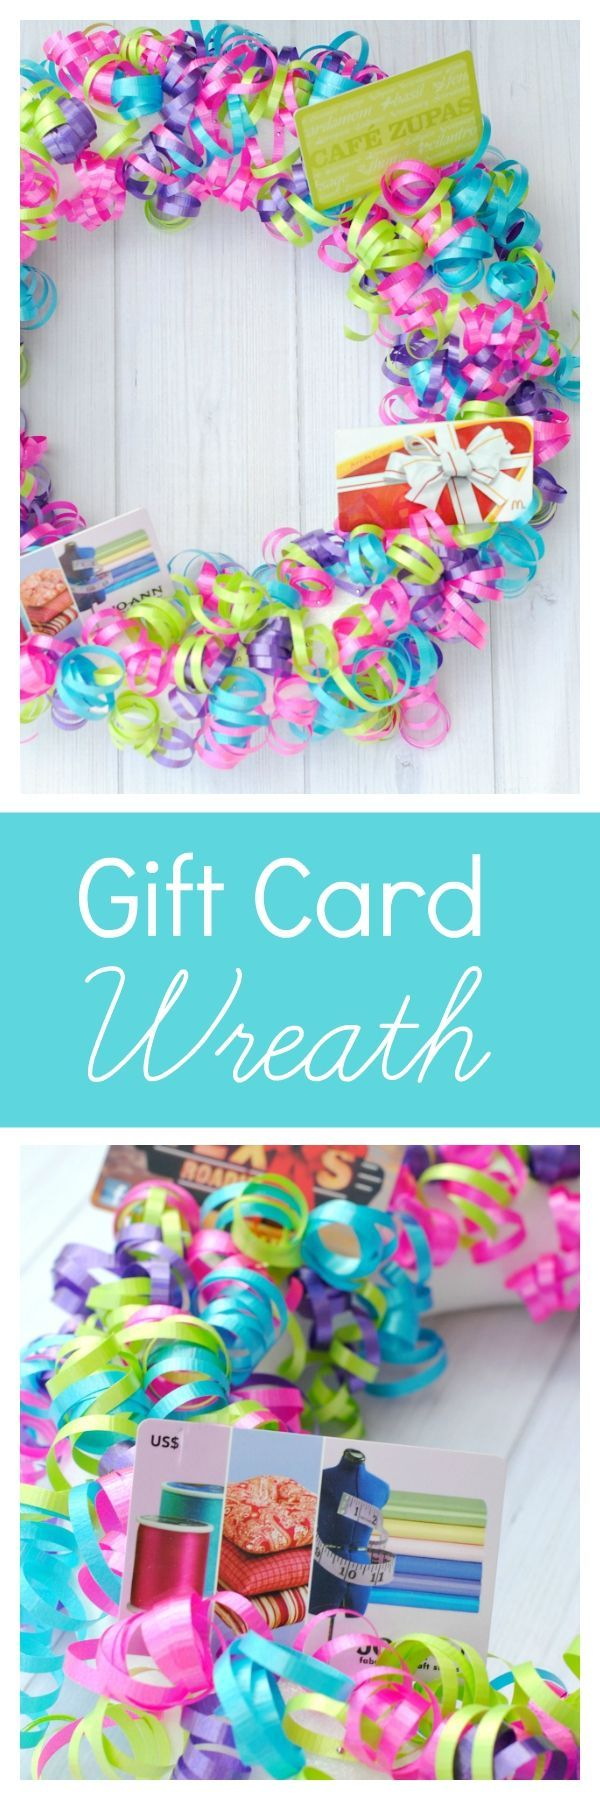 Gift card tree ideas pinterest - Cute Gift Idea Make A Festive Wreath And Fill It With Gift Cards